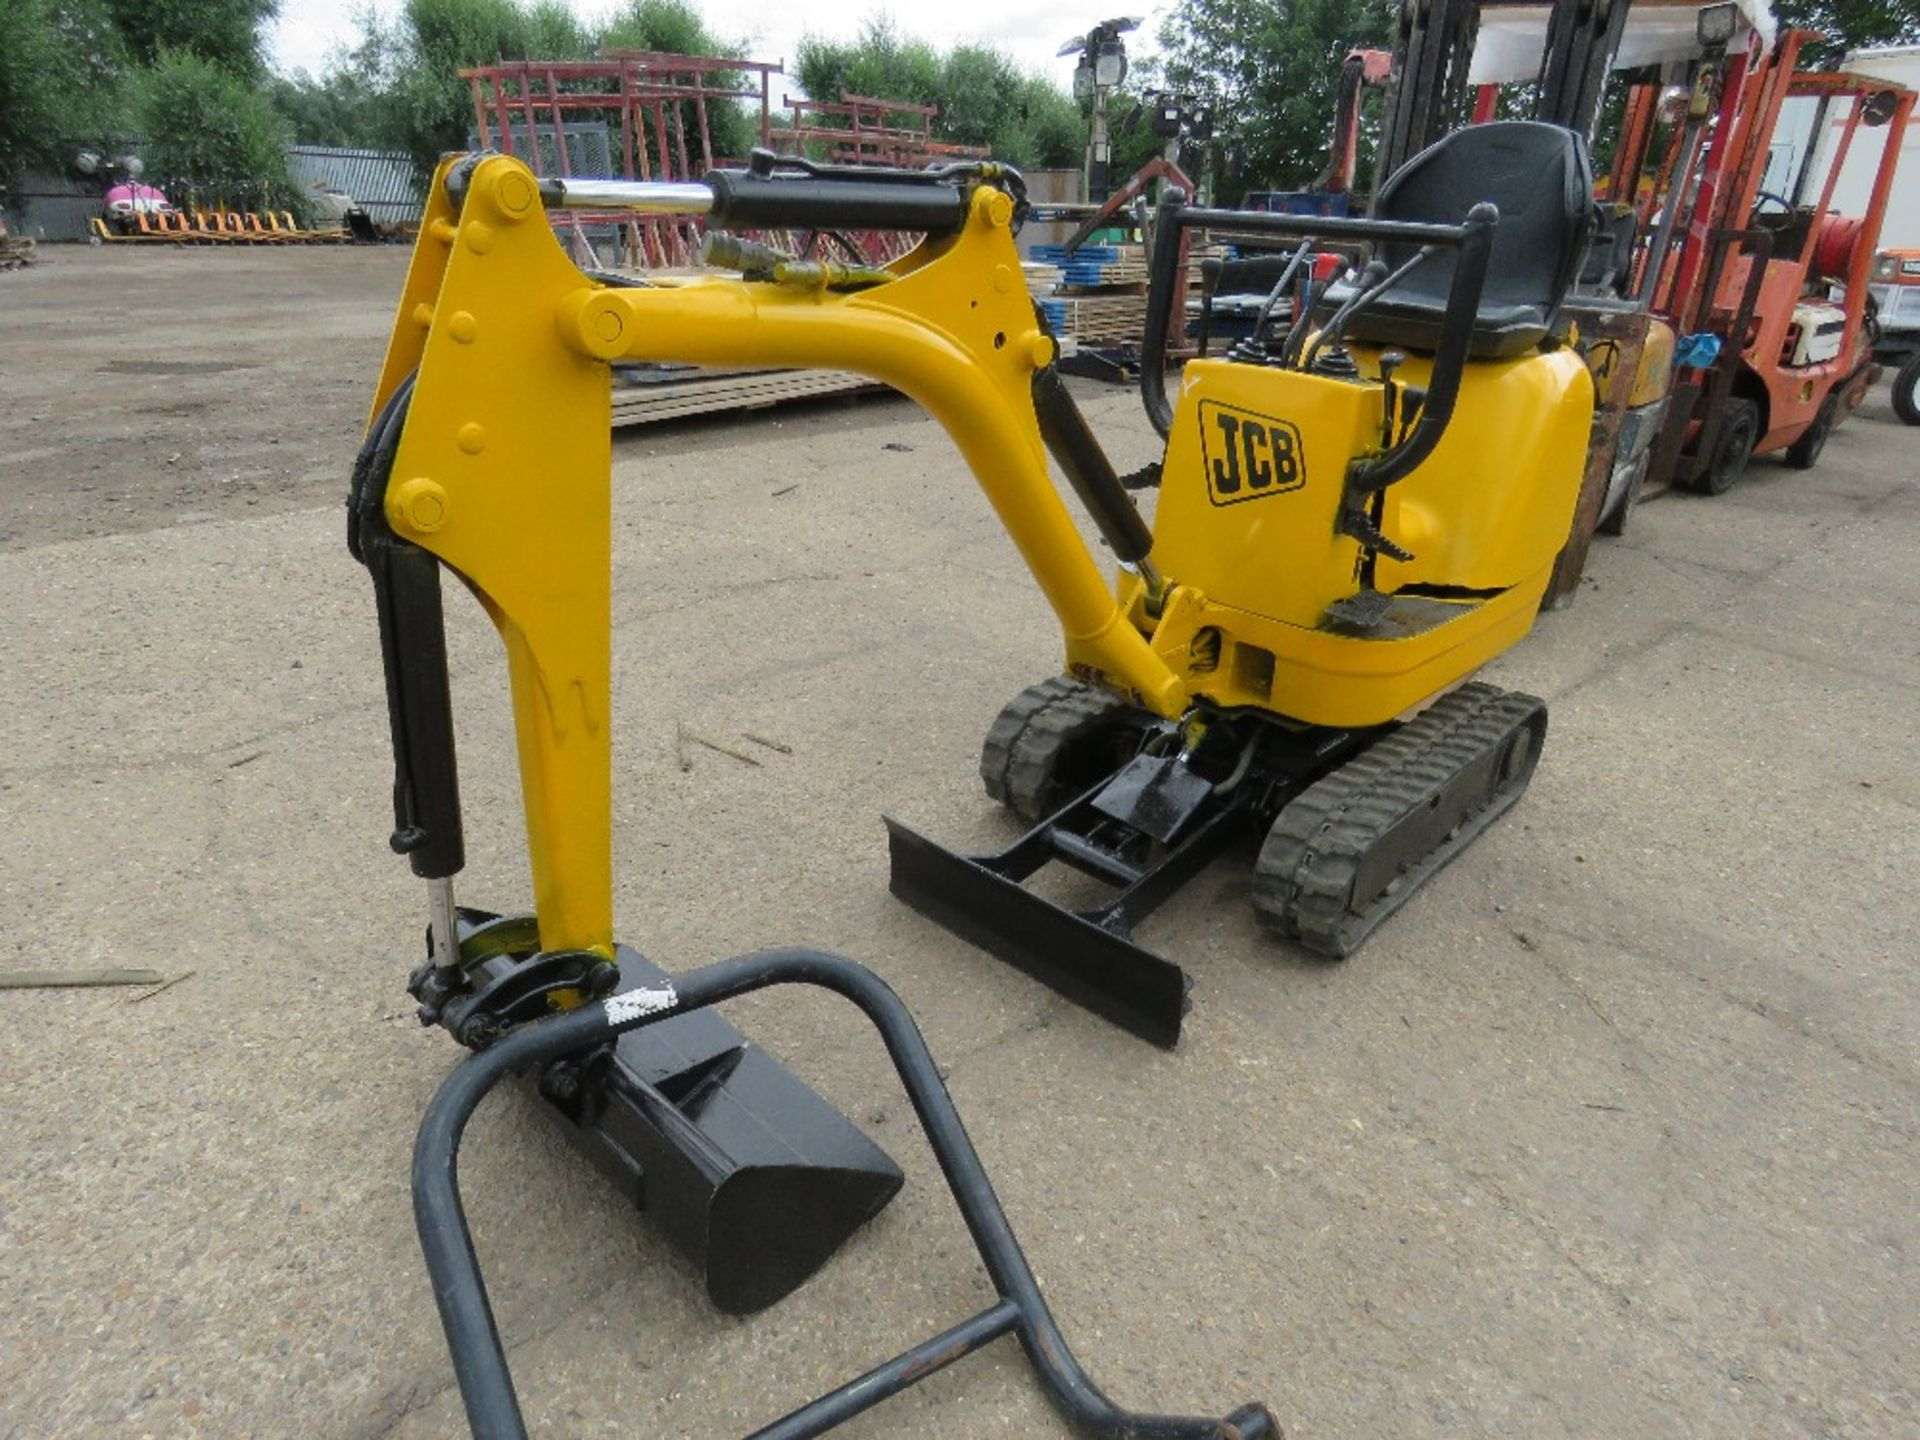 Lot 1 - JCB 8008CTS MICRO EXCAVATOR C/W 1 GRADING BUCKET, YEAR 2015, SN: JCB8008A00764702, RECORDED HOURS: